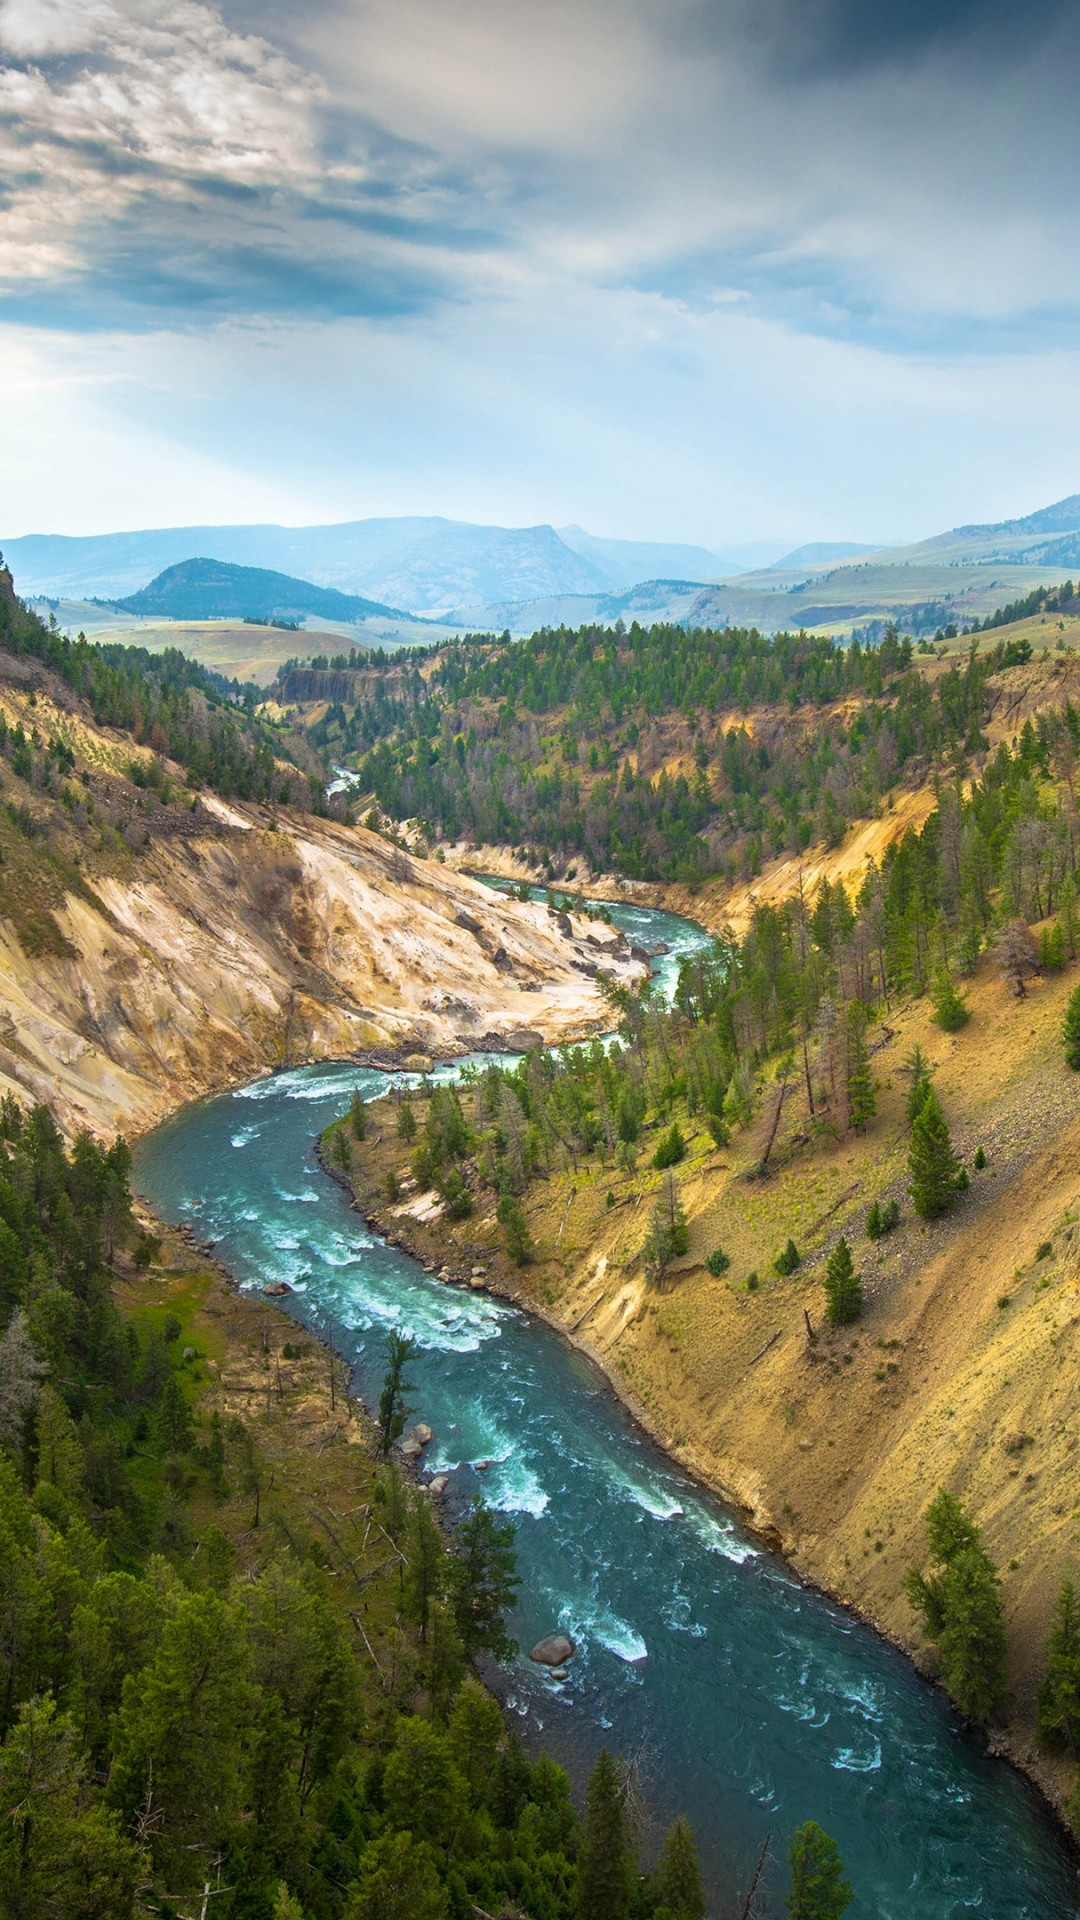 Diamond White Usa >> Wallpaper Yellowstone Landscape, 4k, 5k wallpaper, USA ...